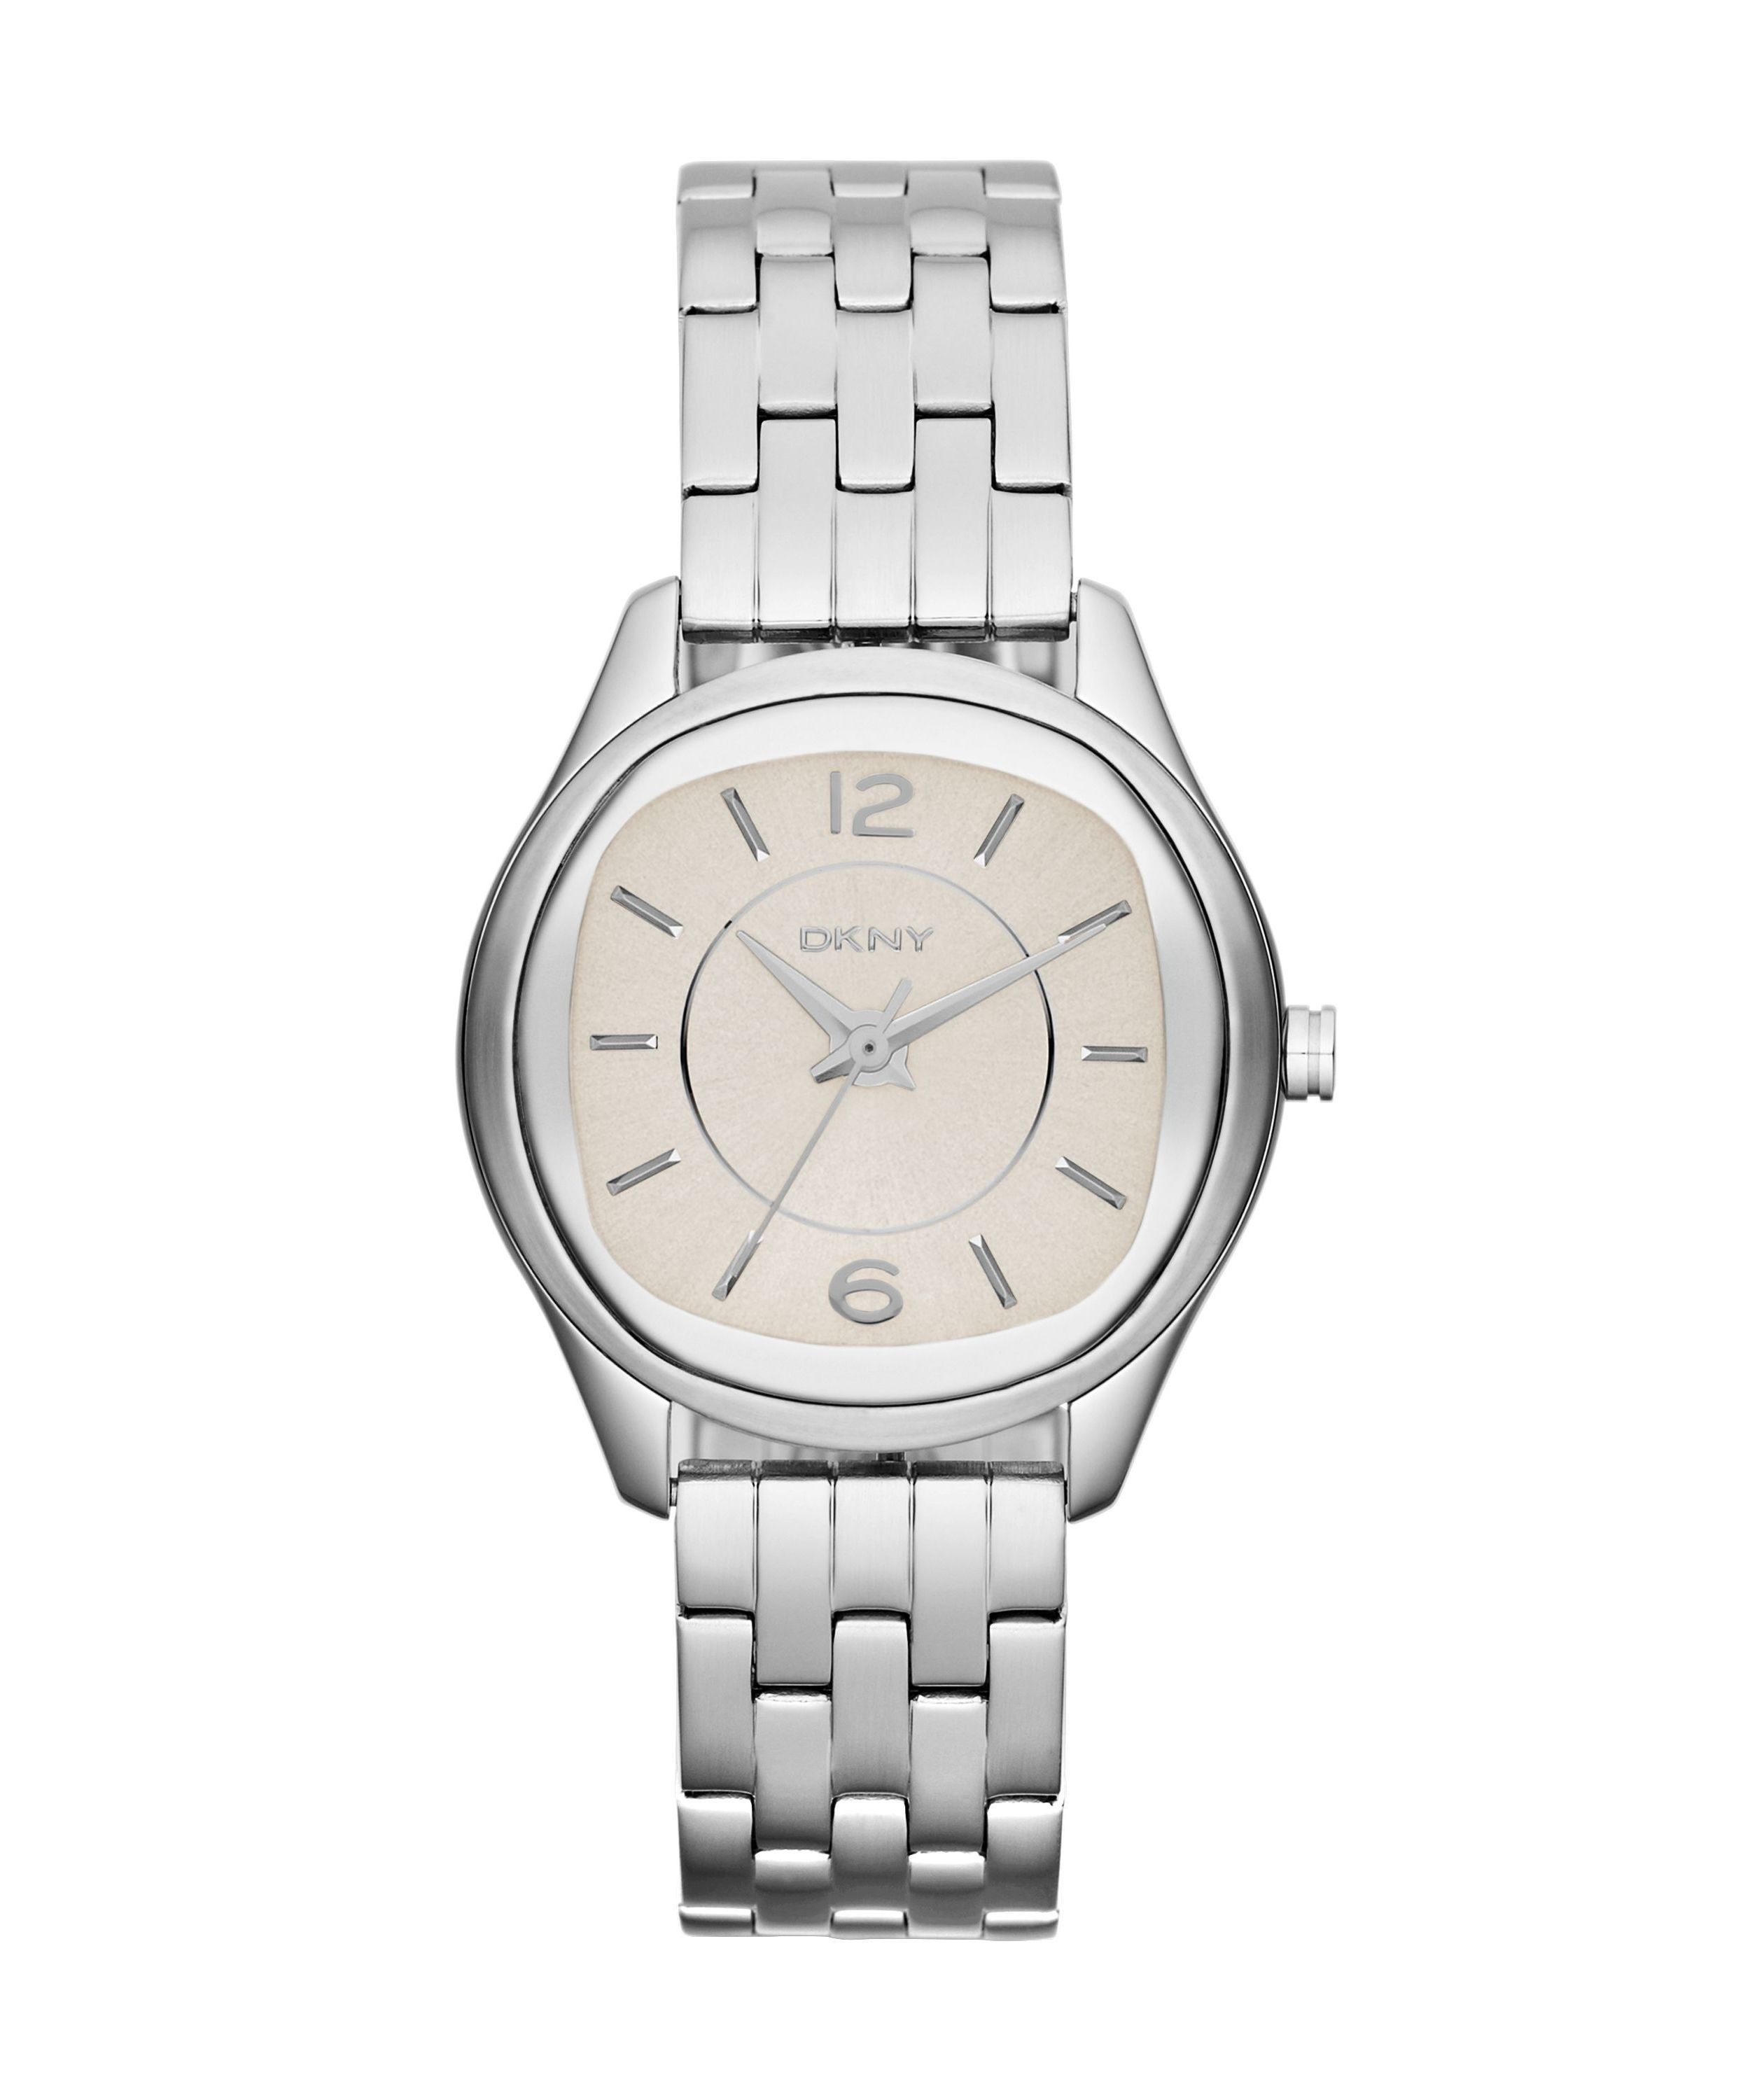 NY8806 Essentials stainless steel ladies watch